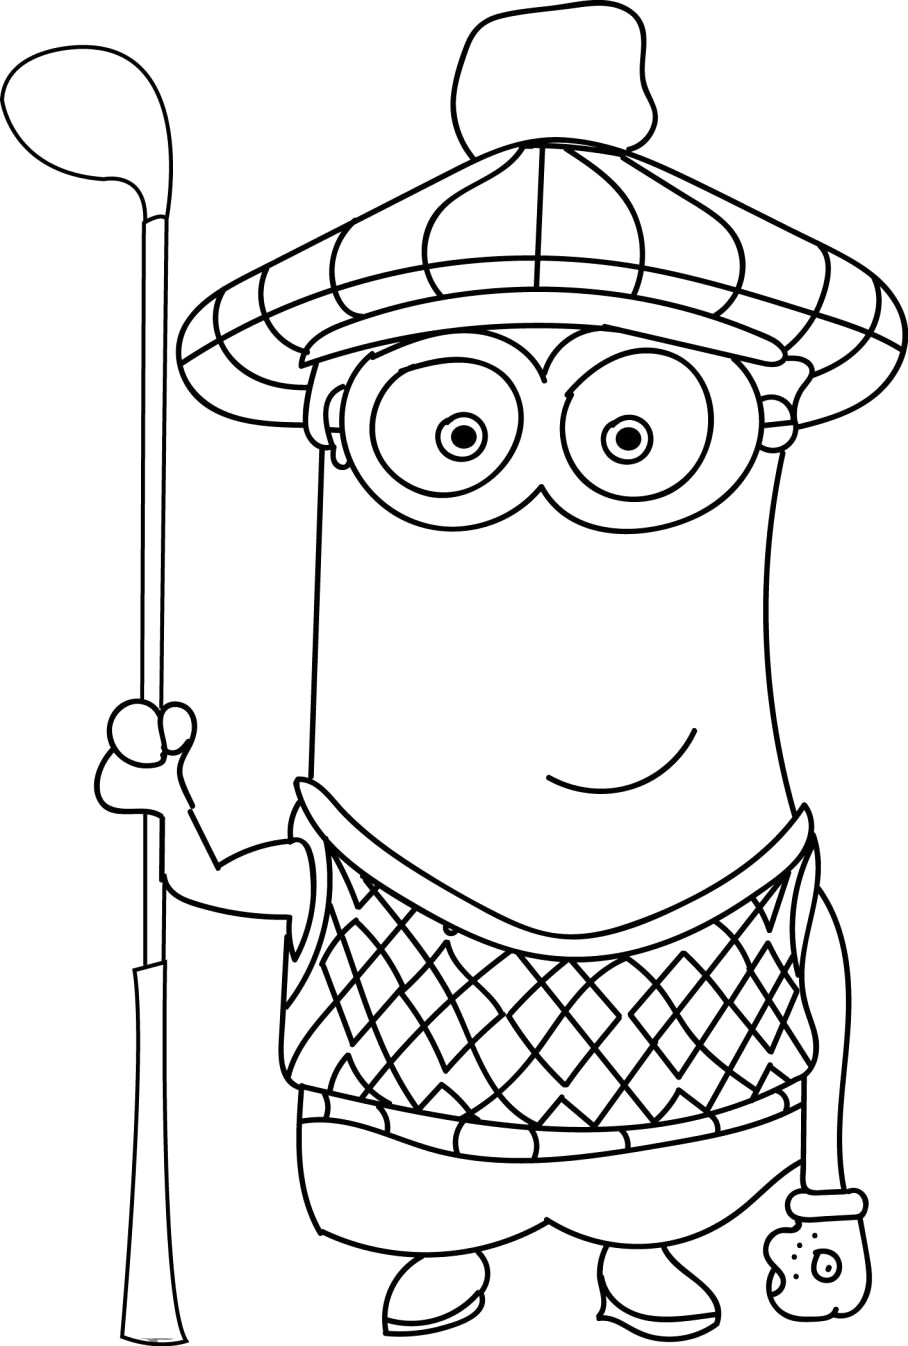 minion kevin coloring pages minion coloring pages kevin at getcoloringscom free kevin minion coloring pages